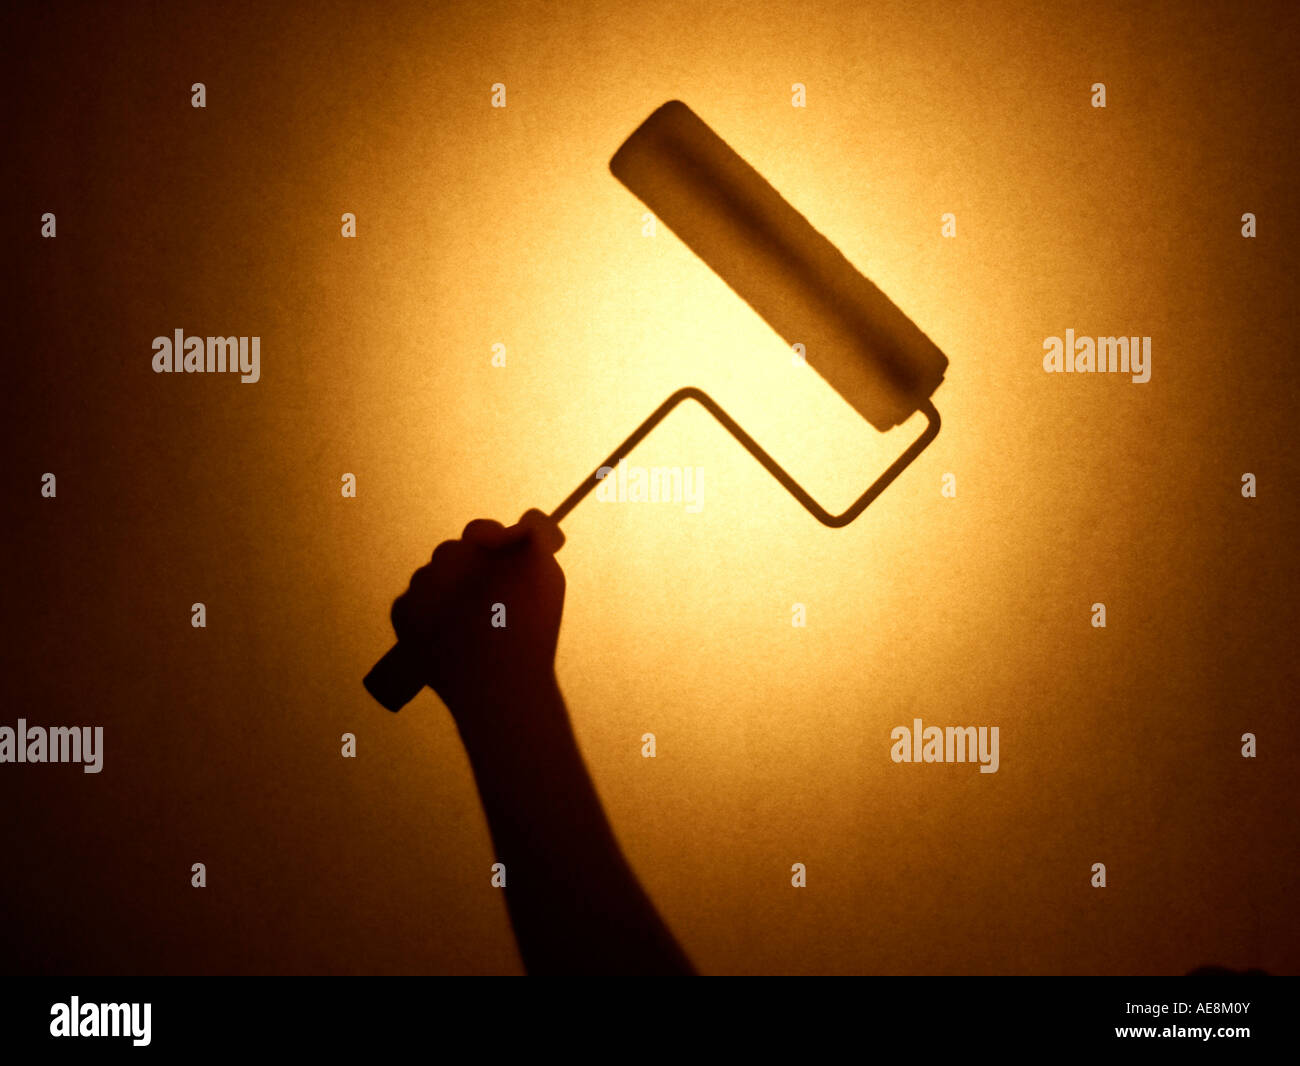 Paint roller hand - Stock Image